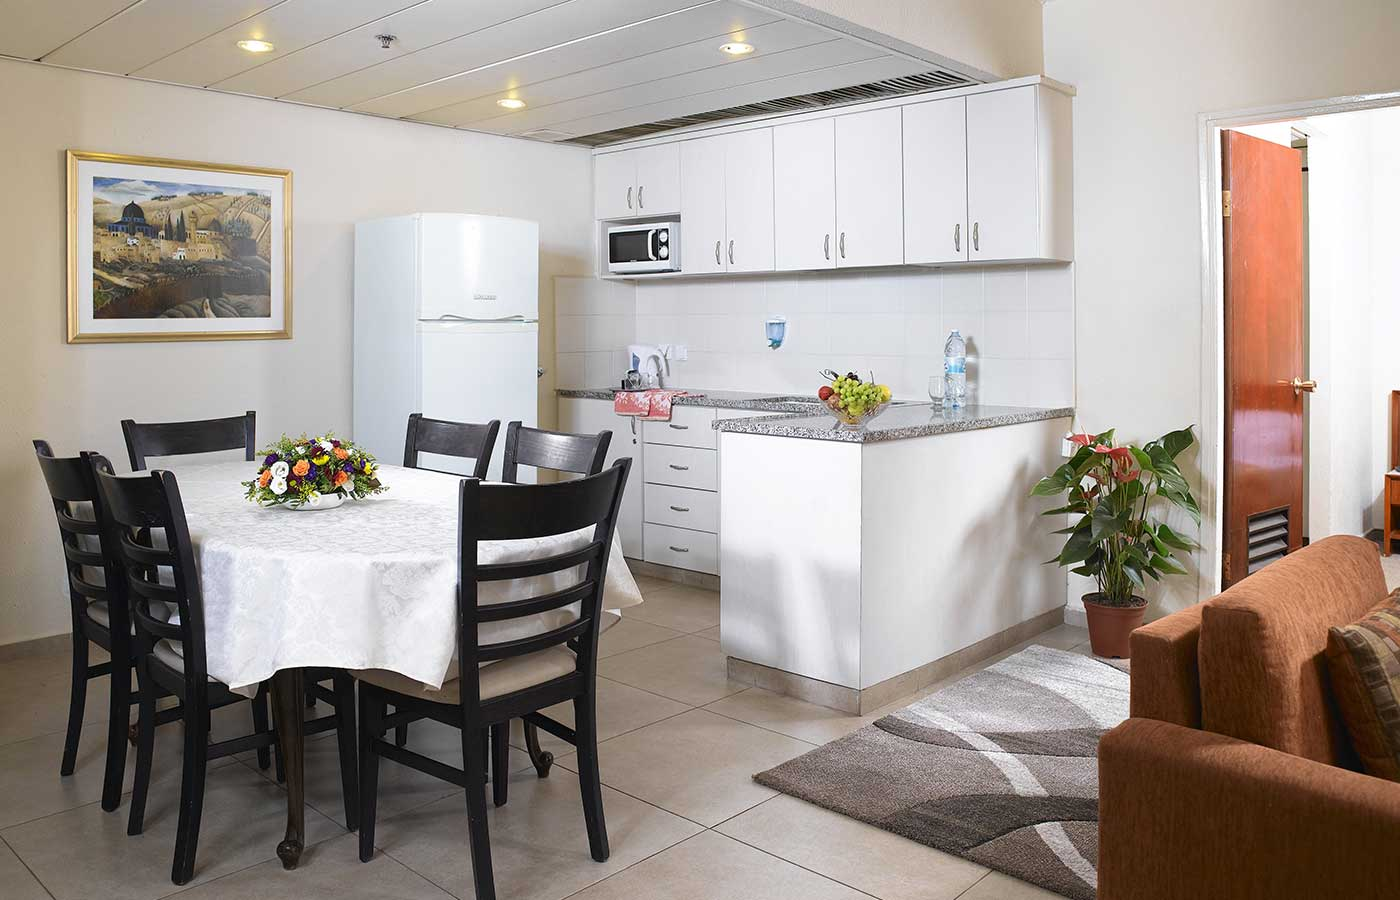 Suite in the hotel with kitchenette, sofa, table and chairs